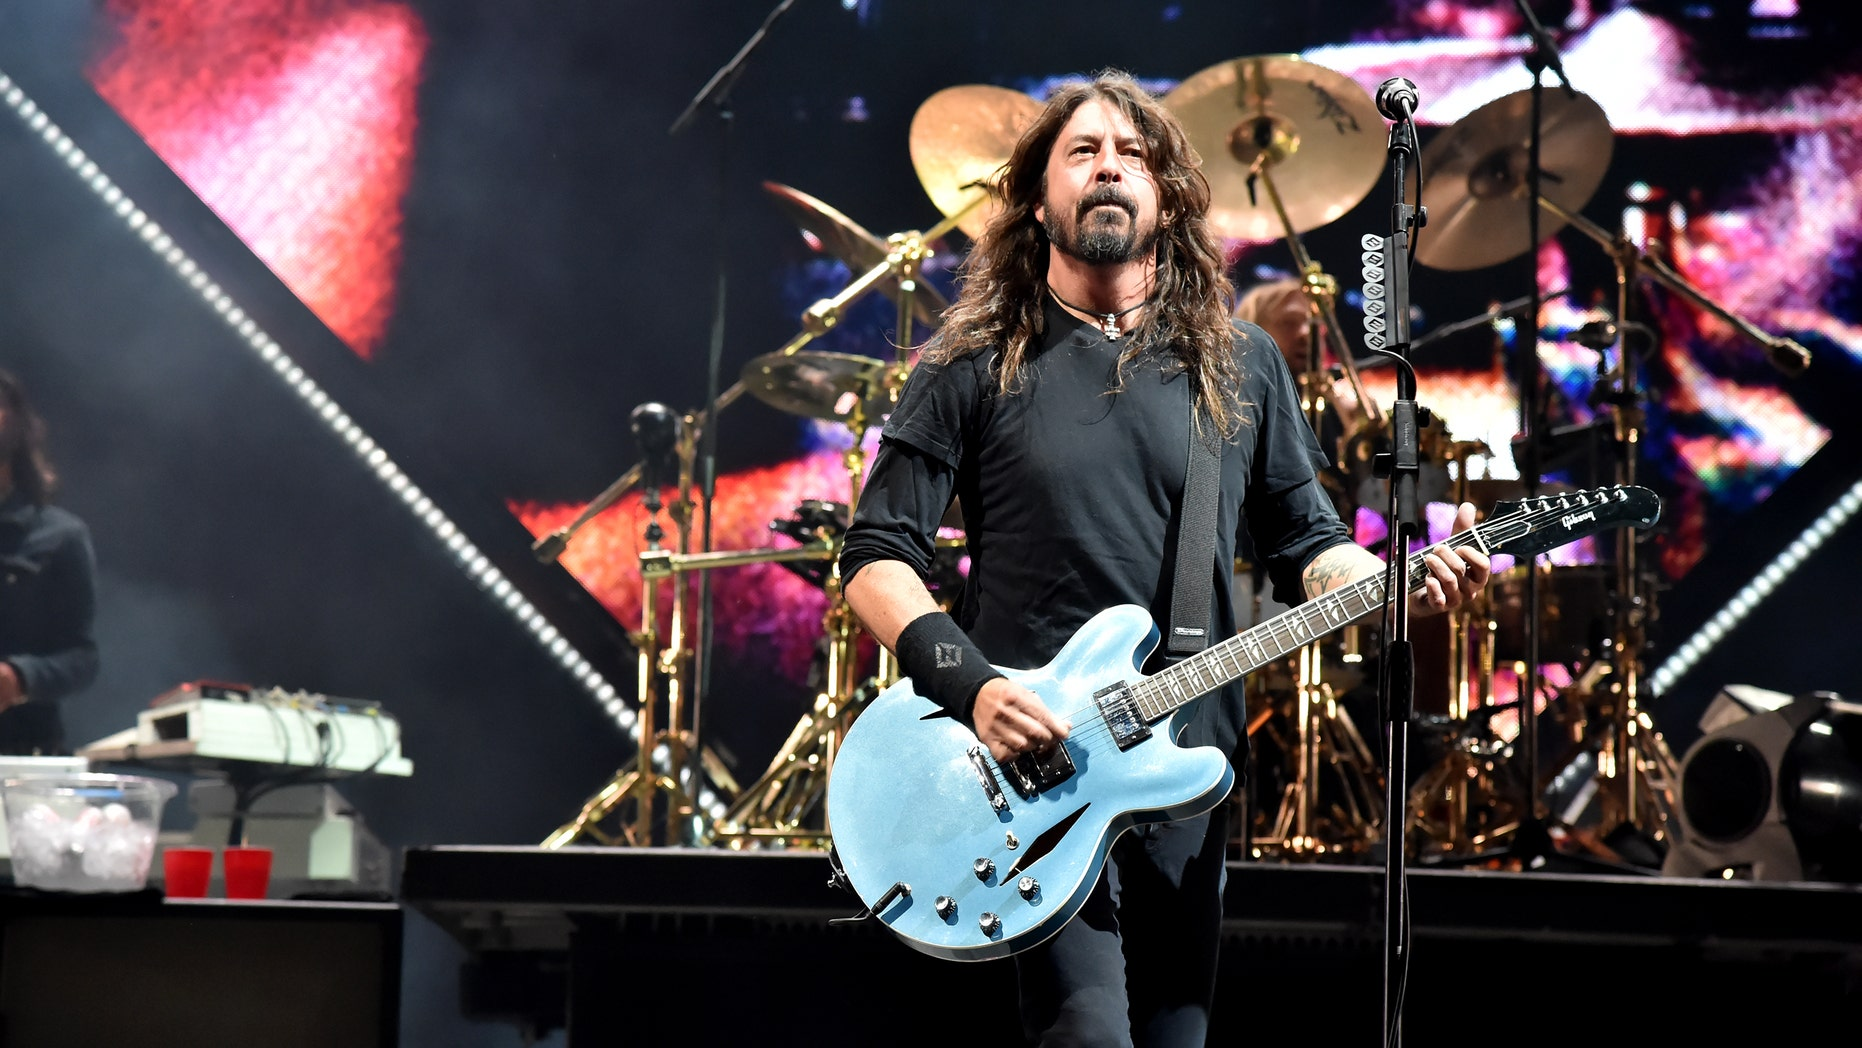 SOMETHING IN THE WAY: Dave Grohl chugs beer, falls off stage…again